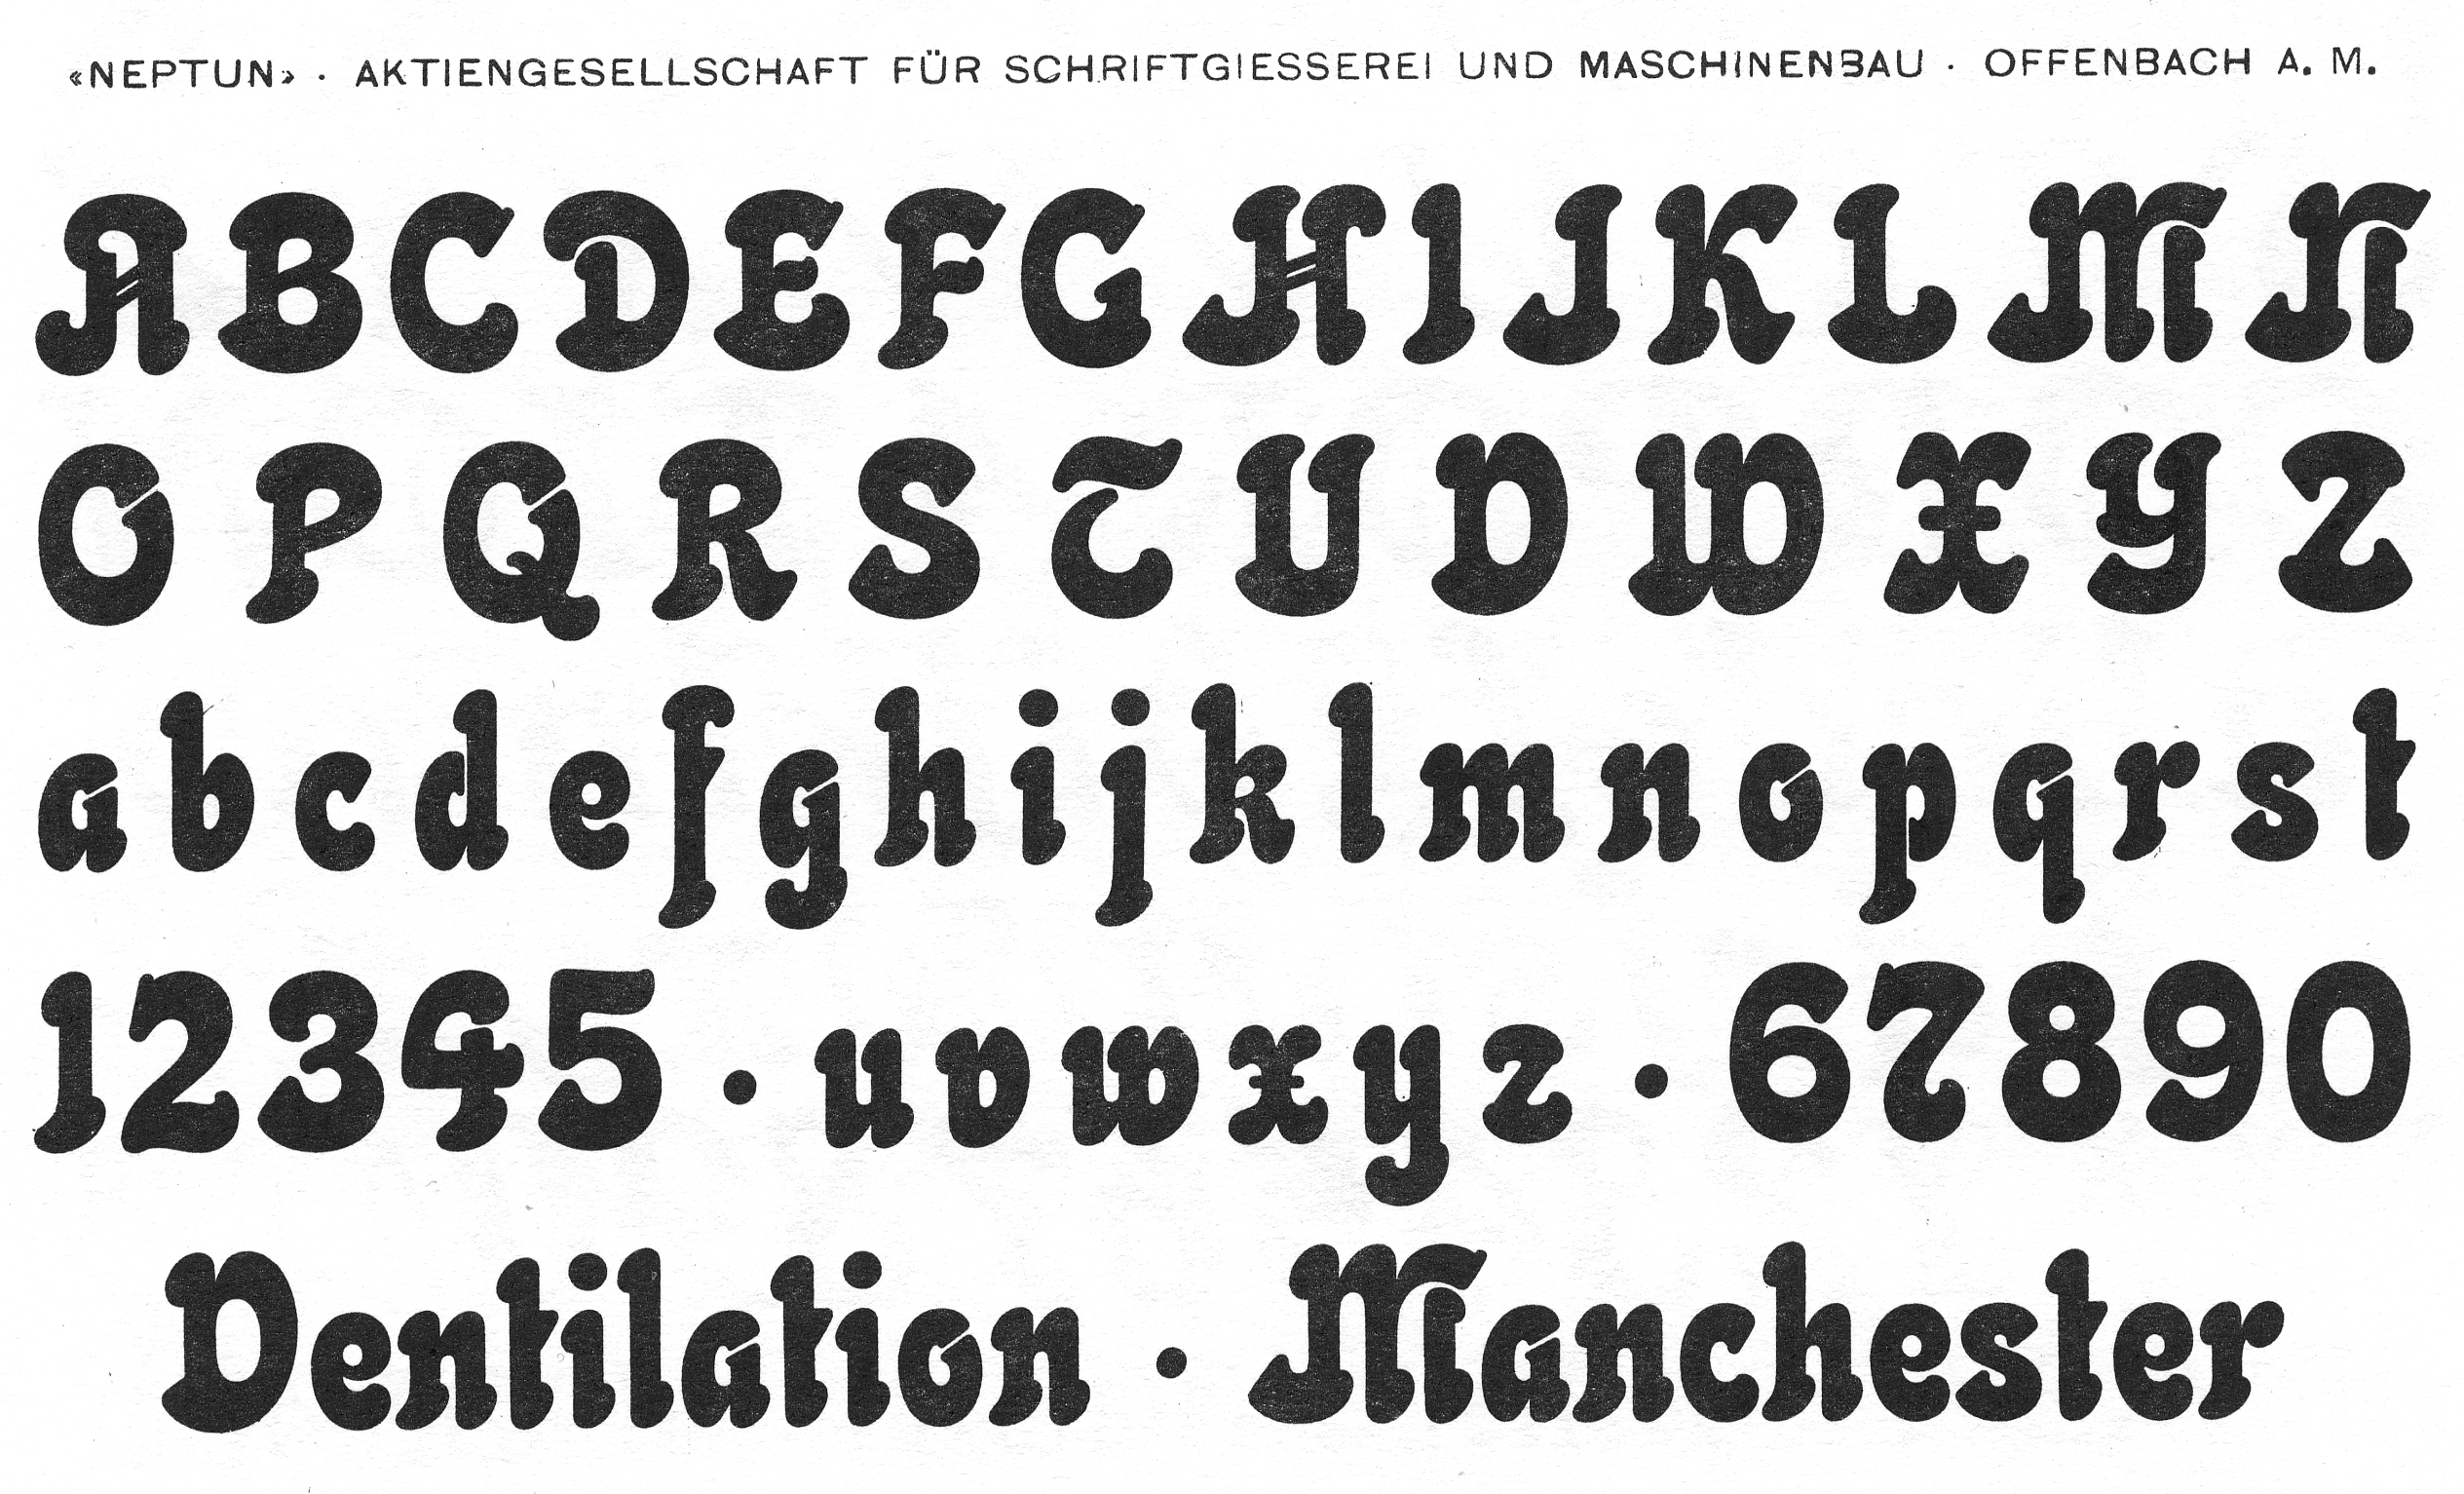 Foundries from the 19th century for Maschinenbau offenbach